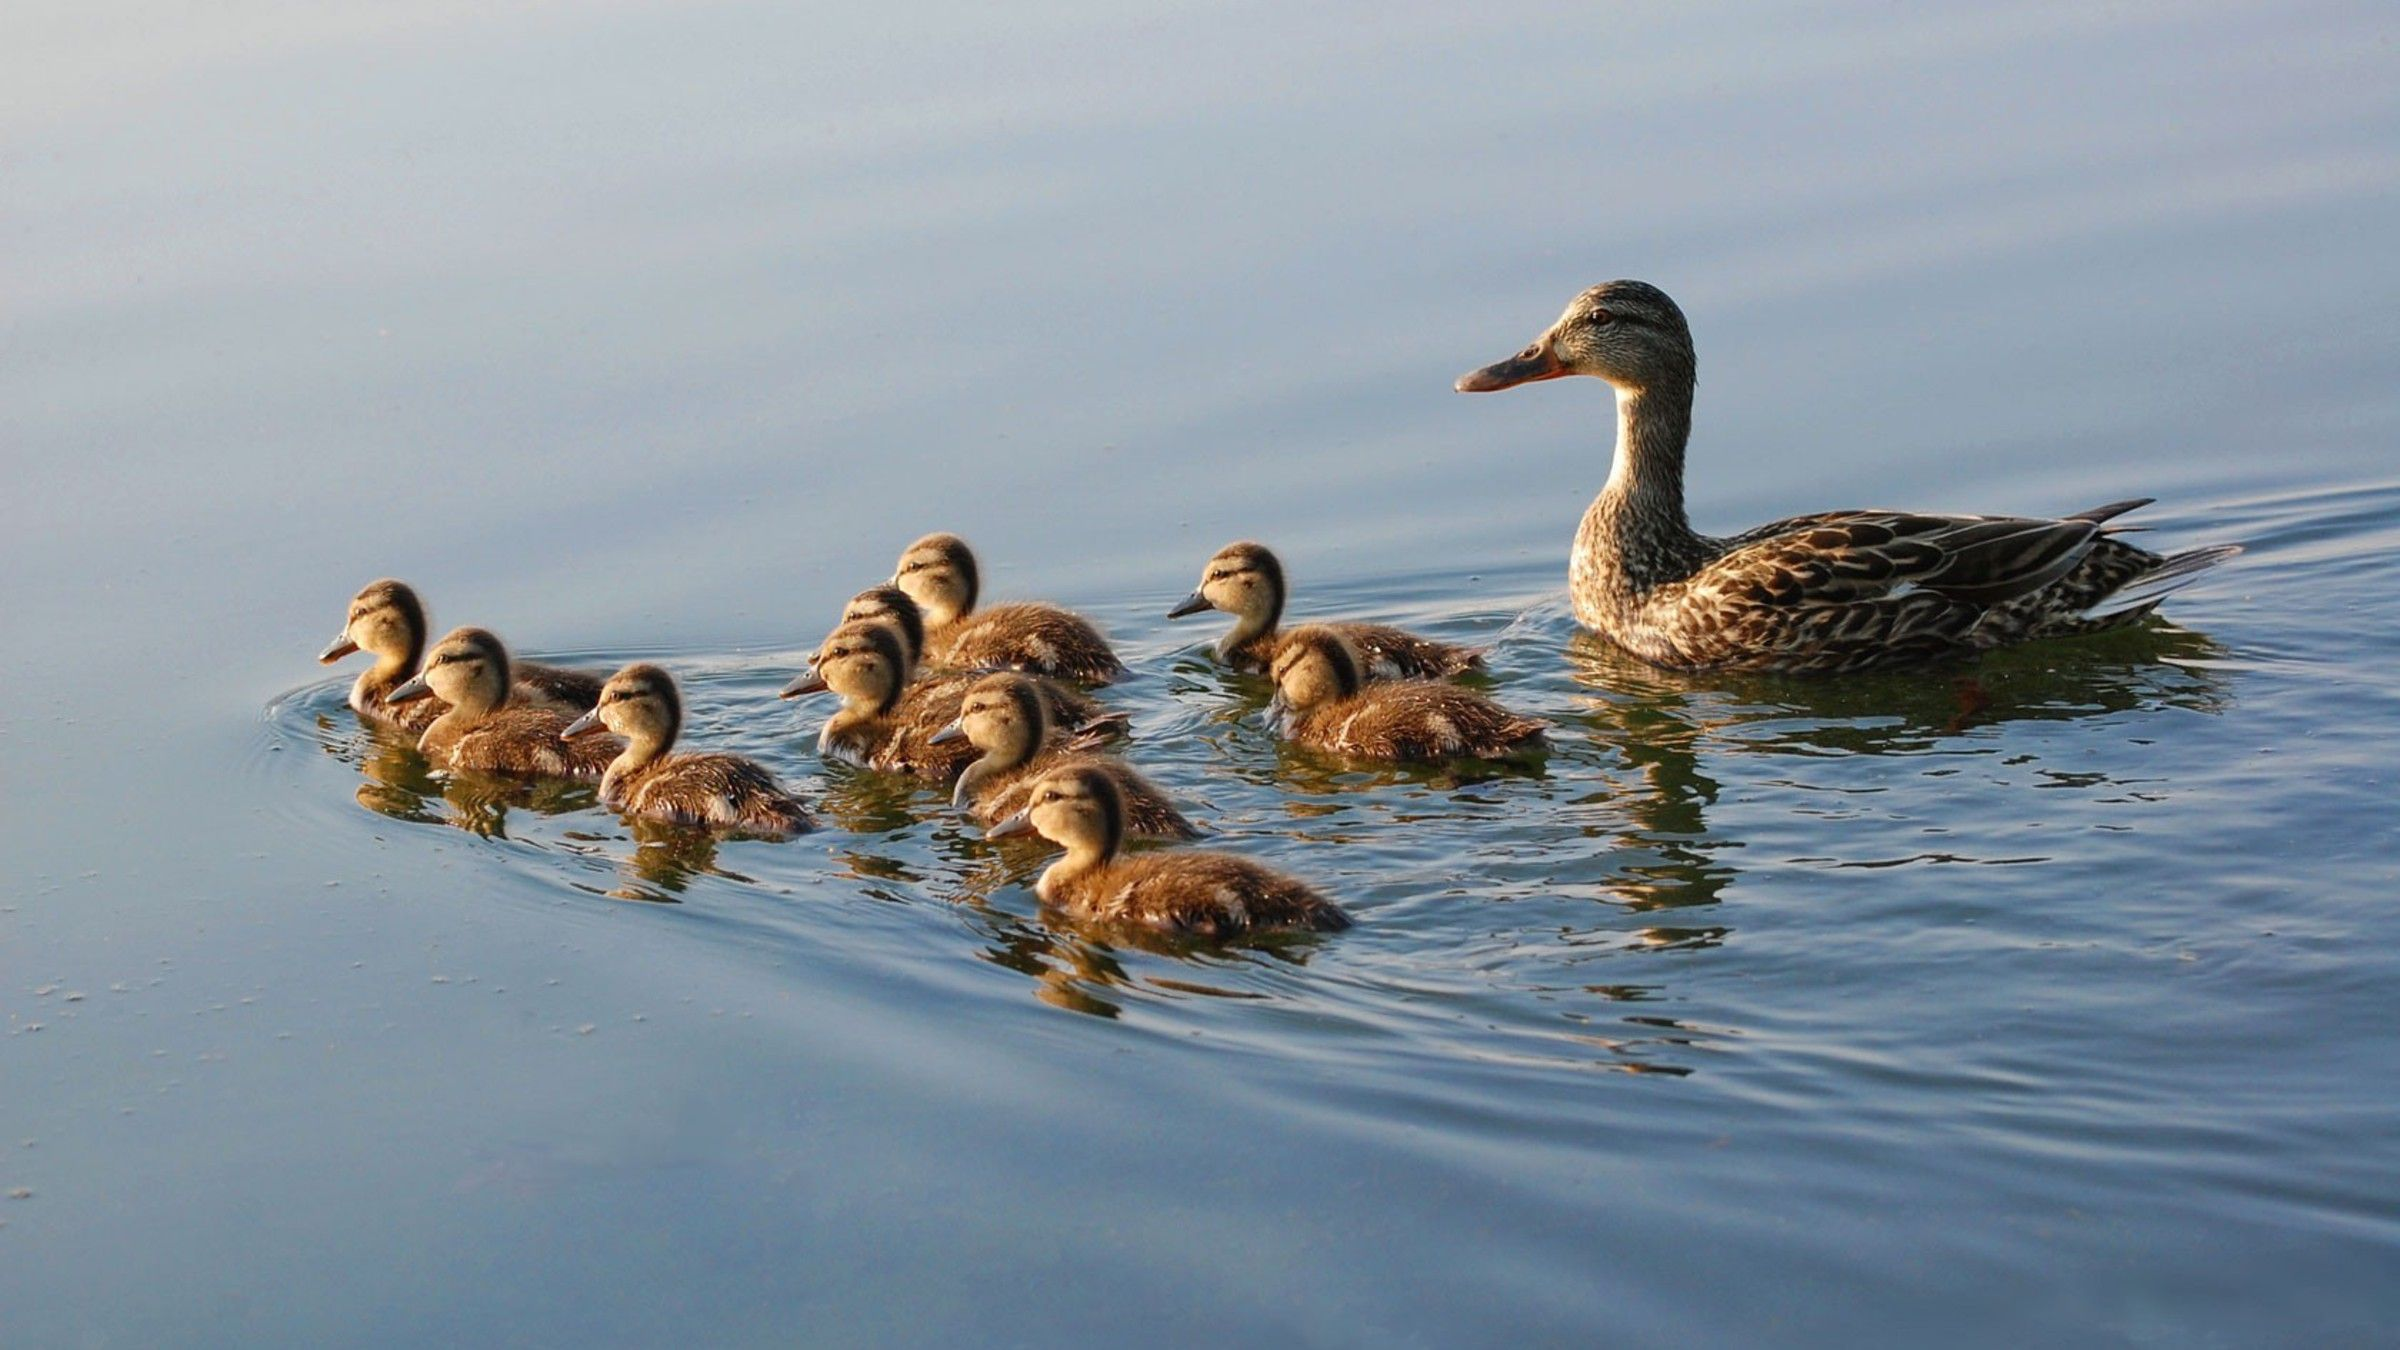 Nature family ducks duckling baby birds wallpaper | AllWallpaper ...